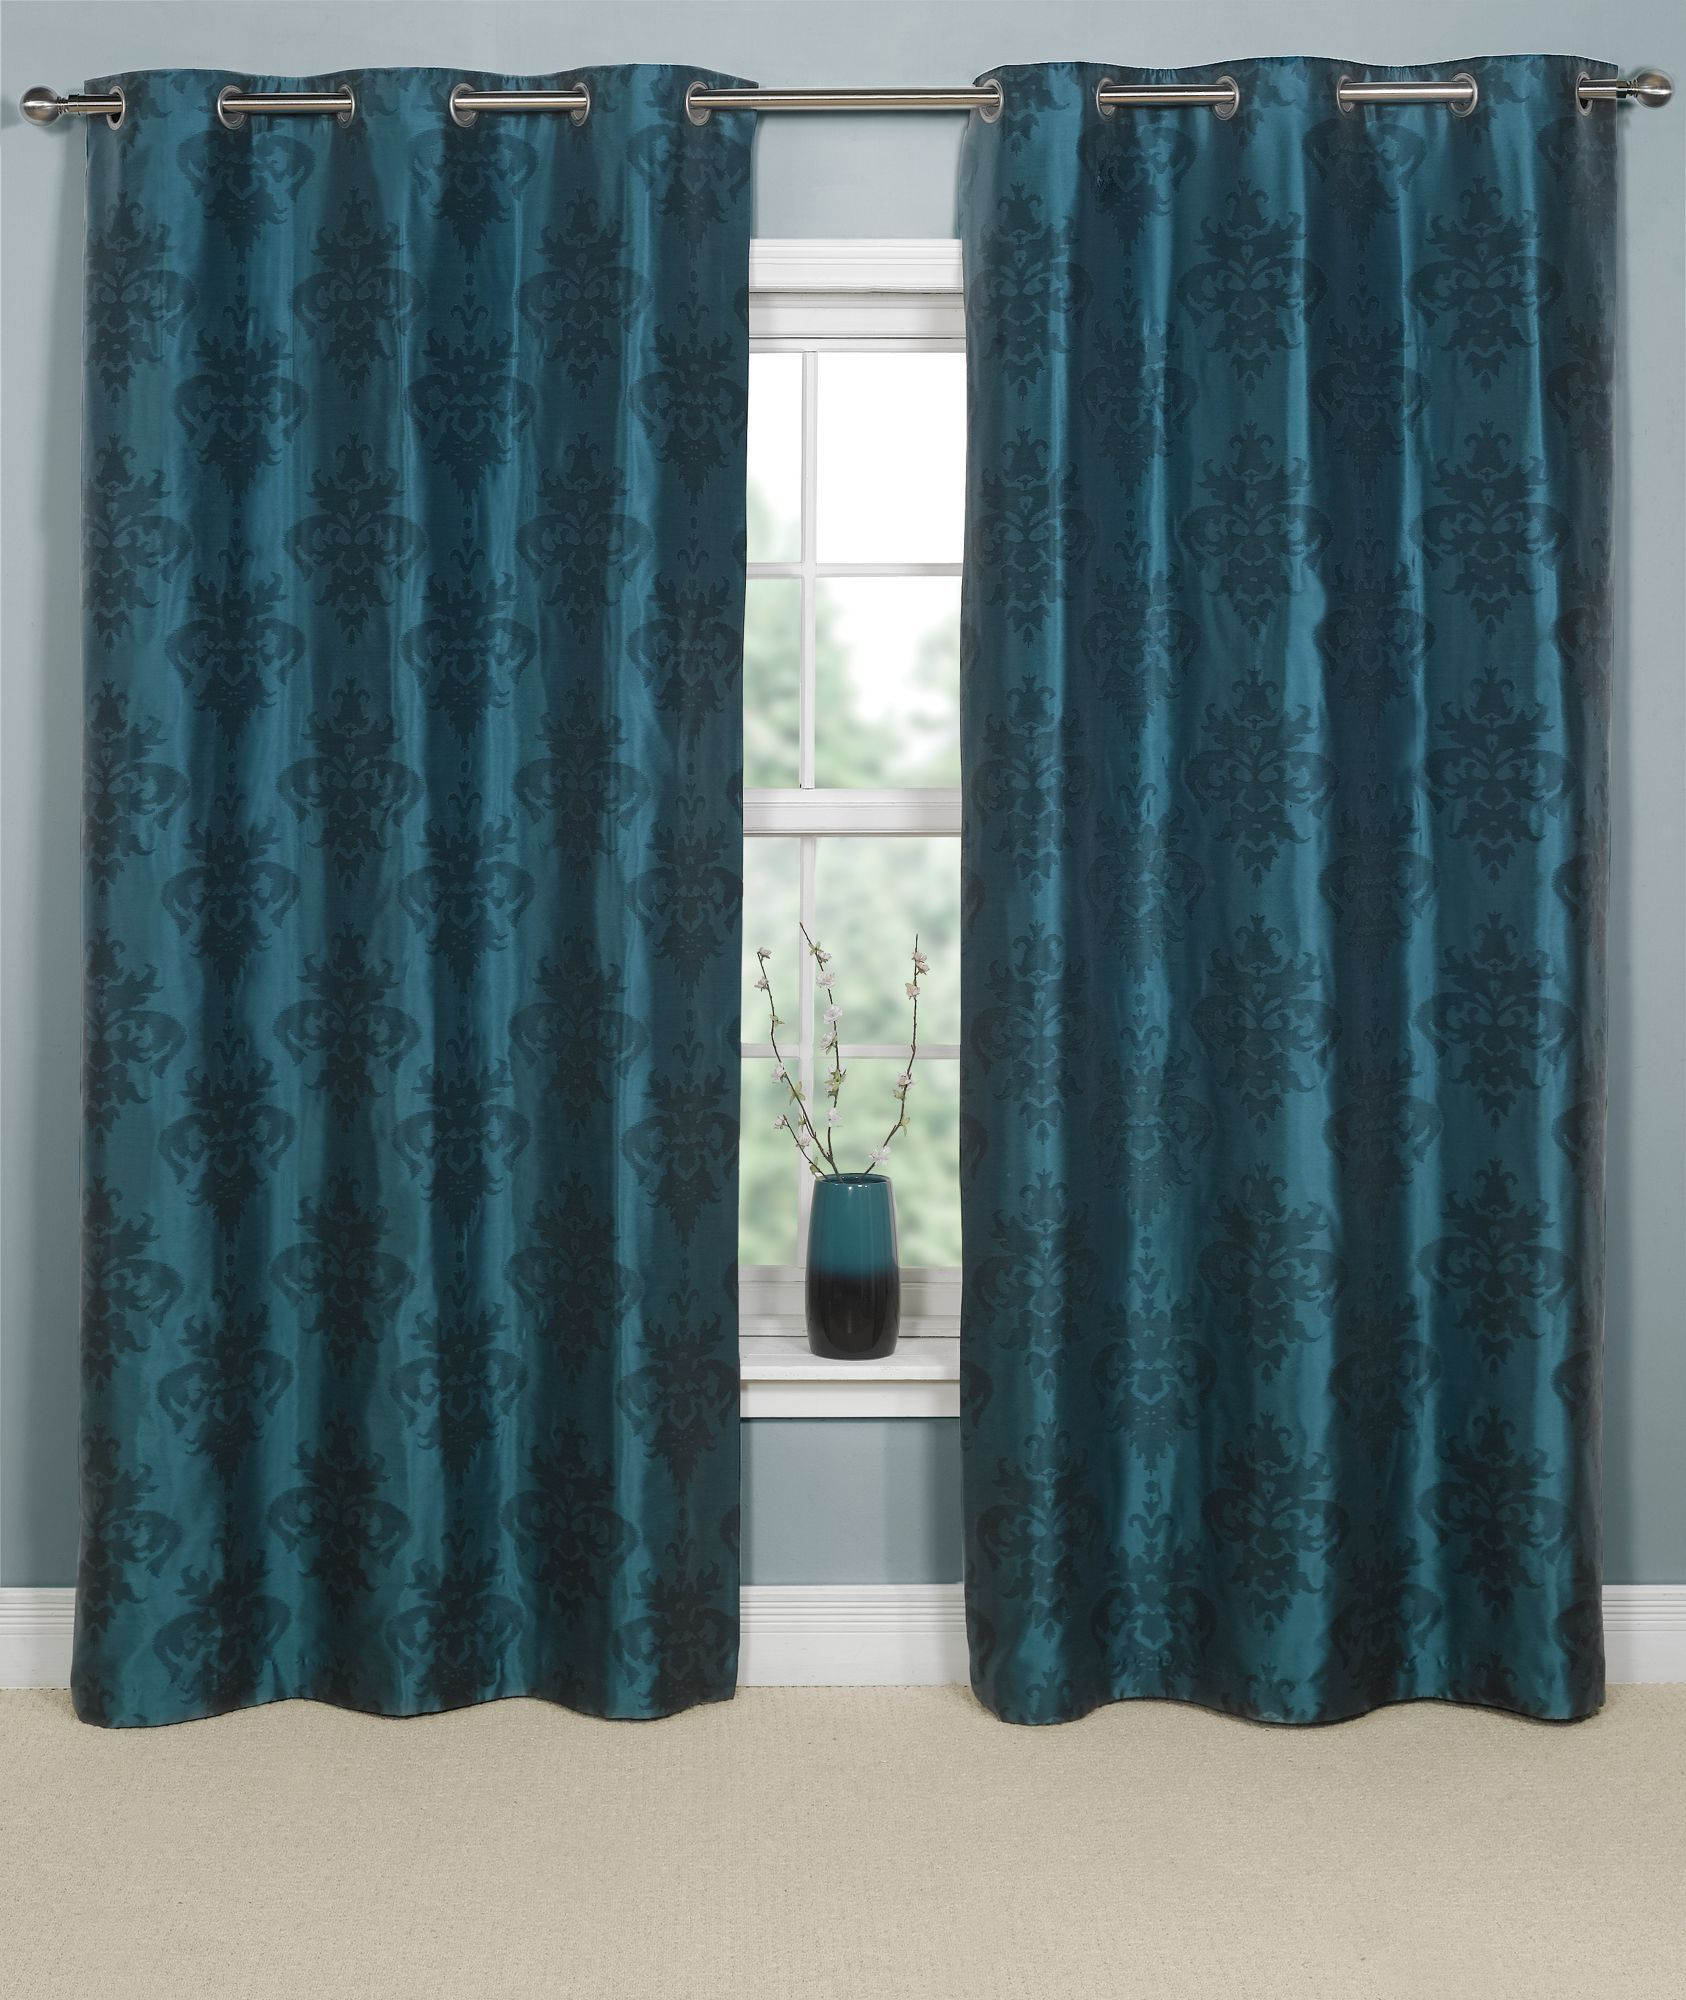 teal and brown curtains | Office | Pinterest | Brown ...